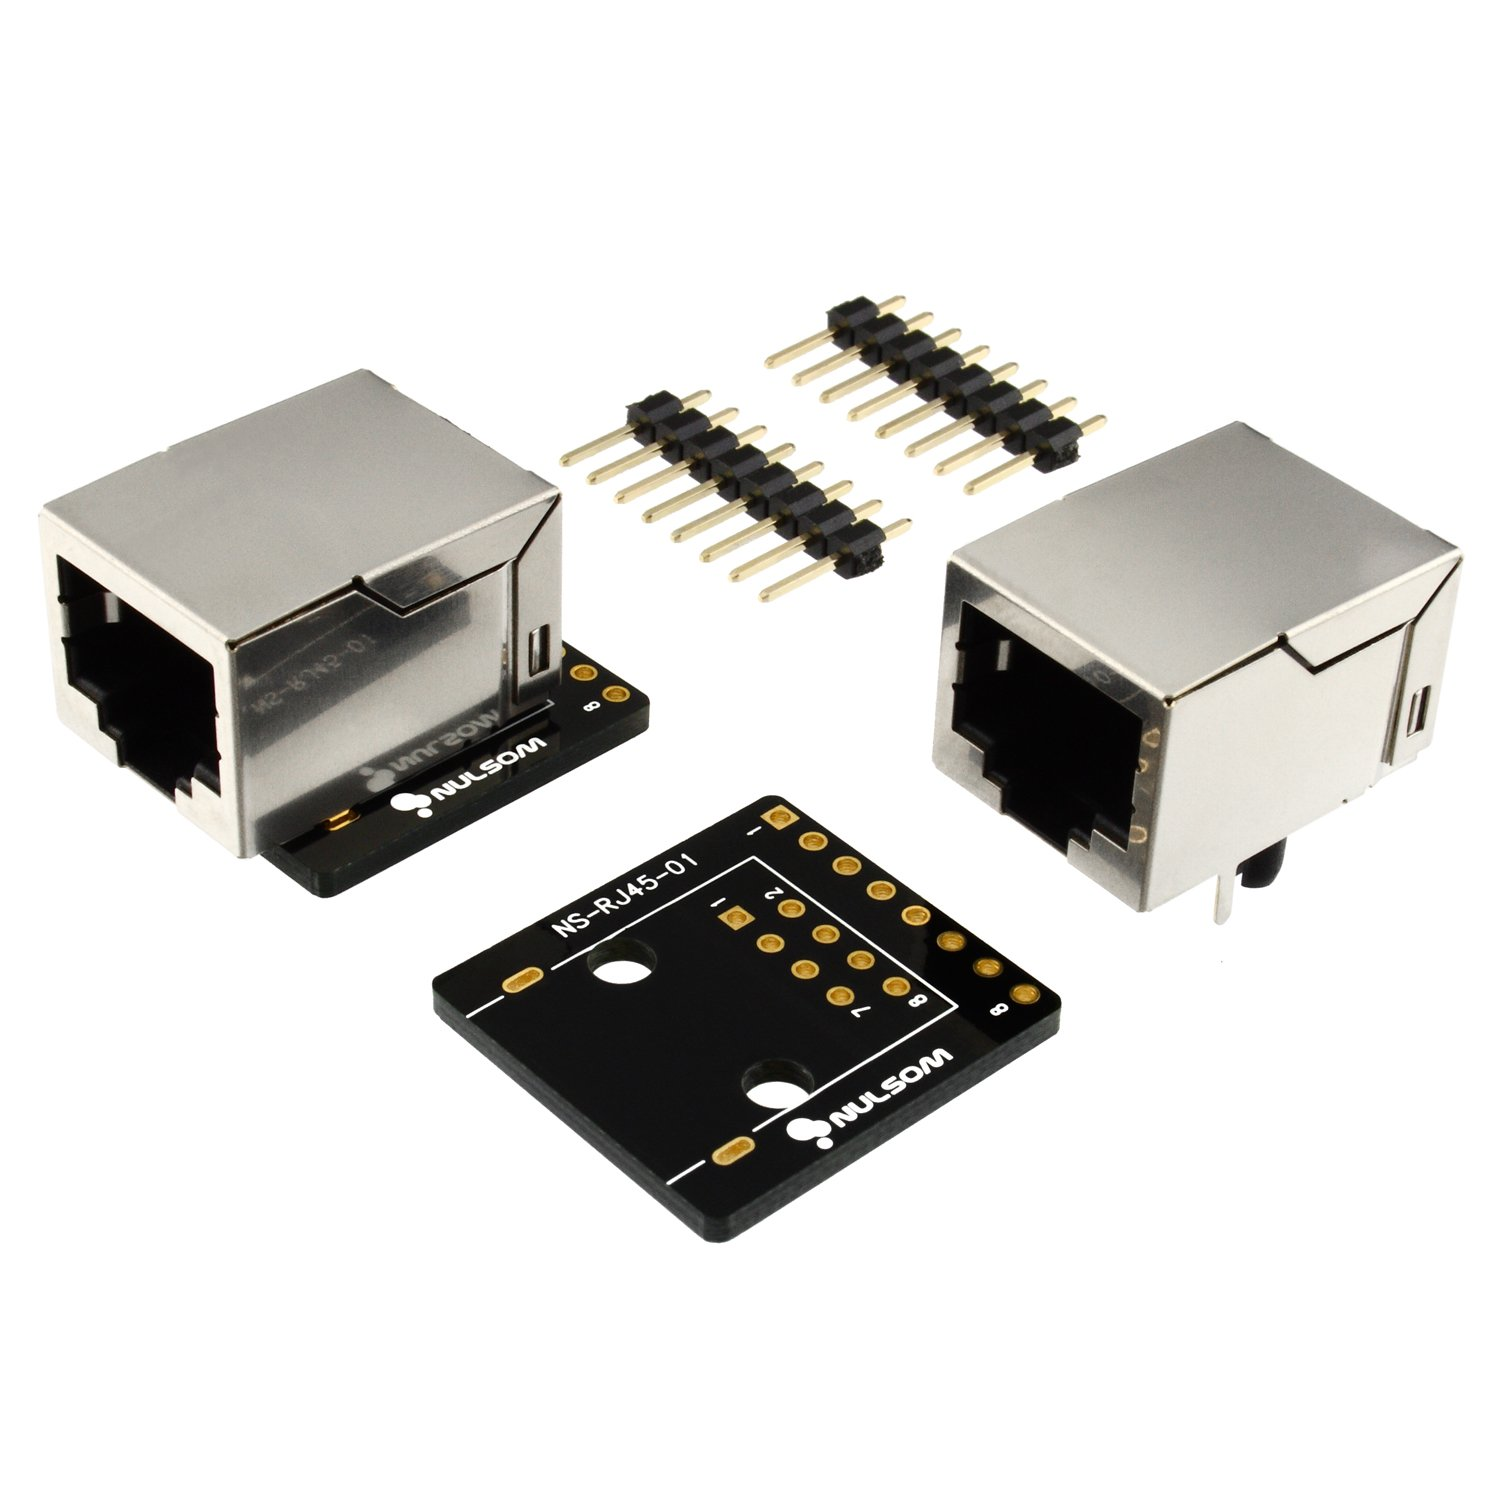 2 Pcs RJ45 8-pin Connector (8P8C) and Breakout Board Kit for Ethernet DMX-512 RS-485 RS-422 RS-232 (Unassambled)